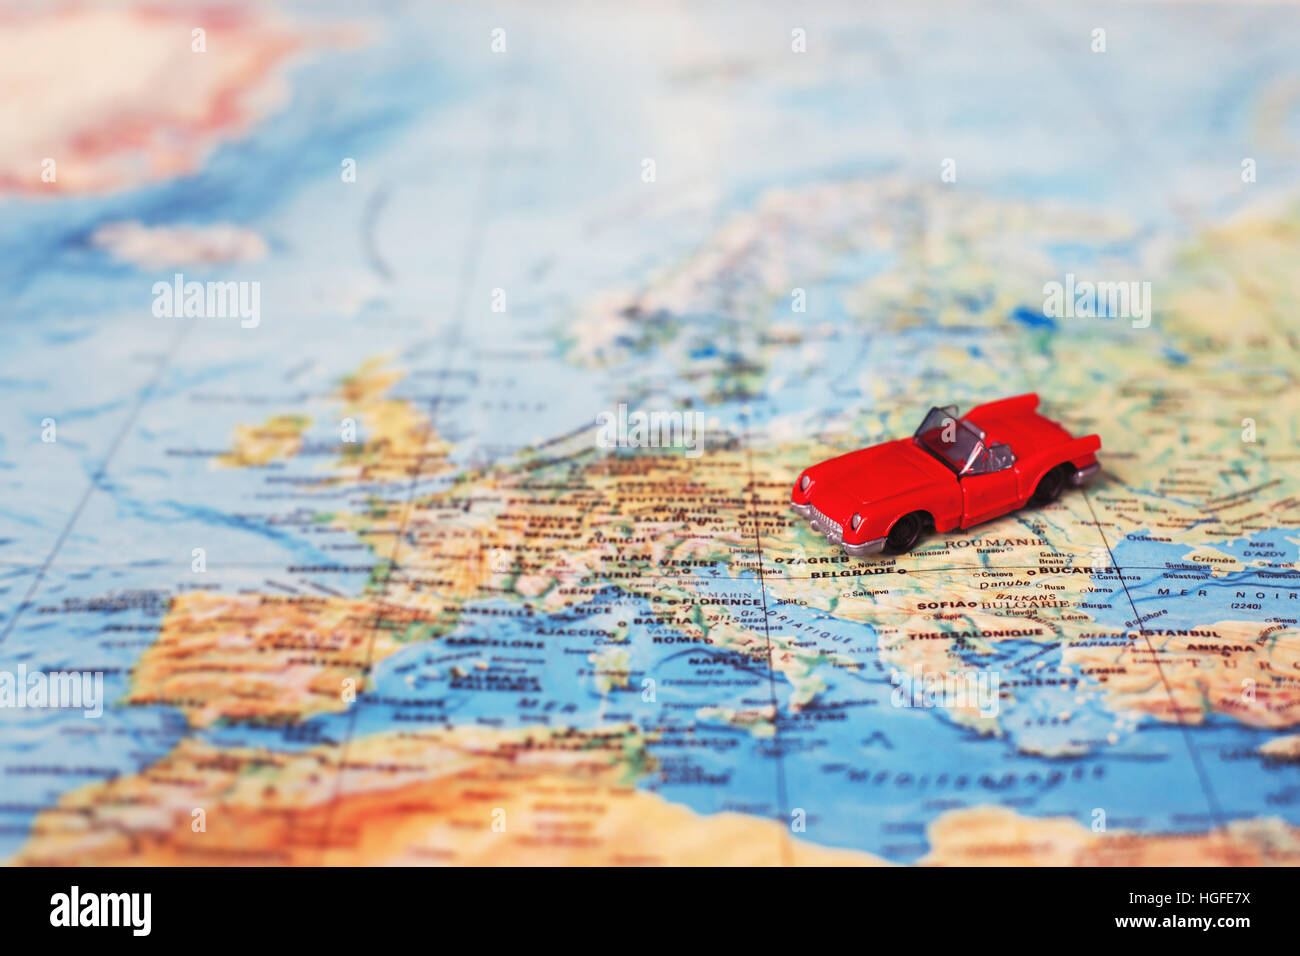 rent car concept, rental vehicle, toy on the map - Stock Image